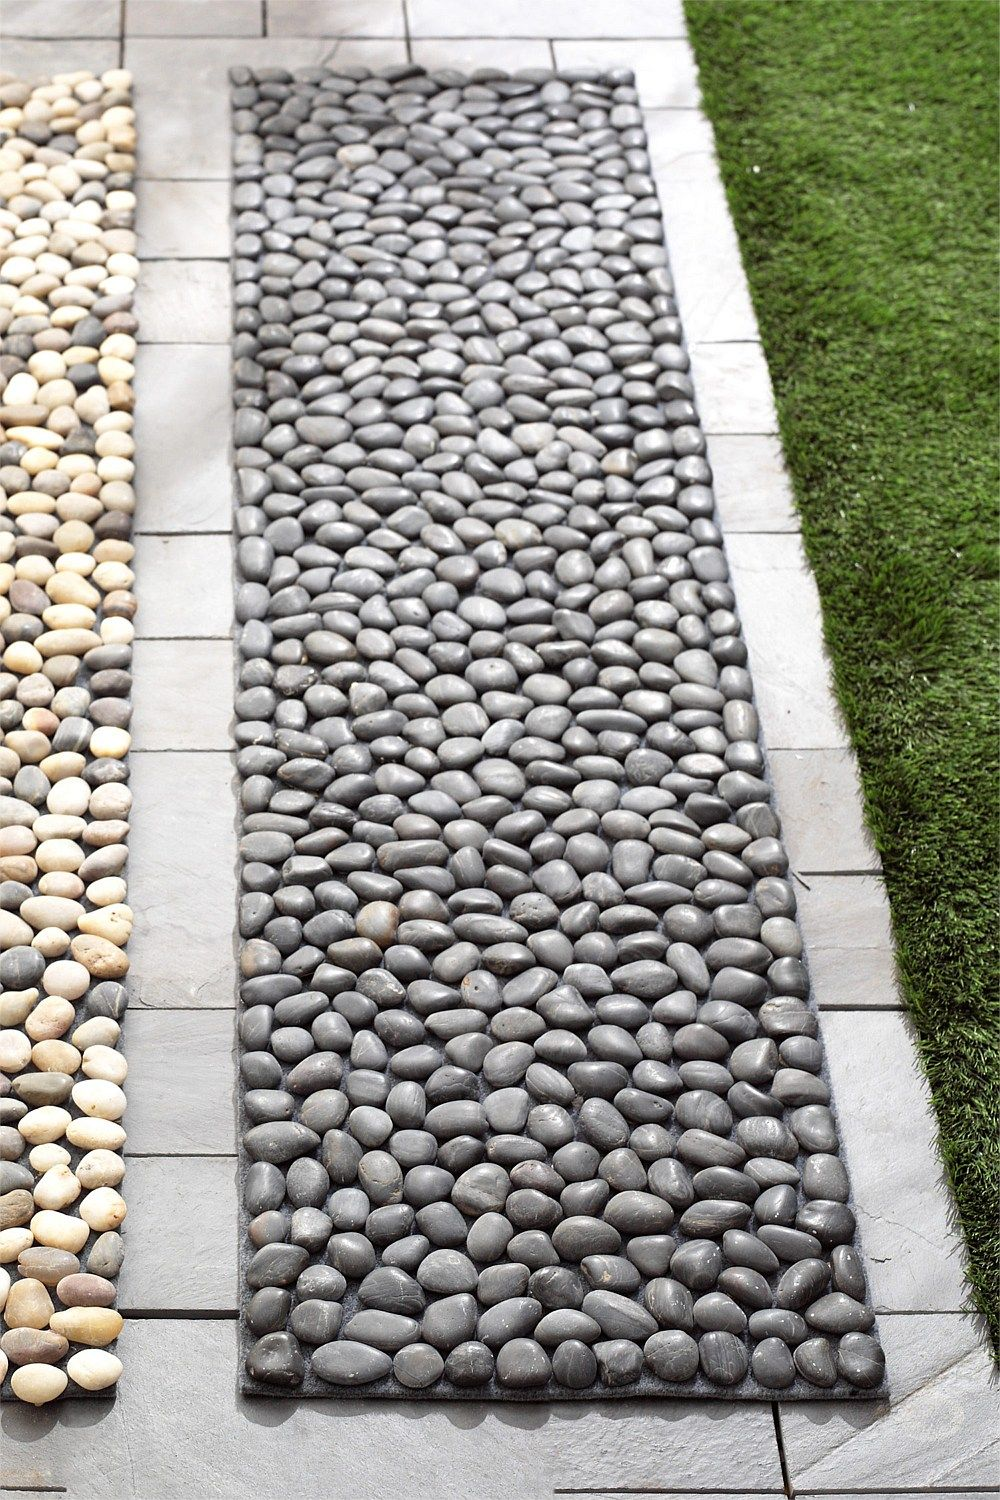 10 DIY Awesome and Interesting Ideas For Great Gardens 2 Yards